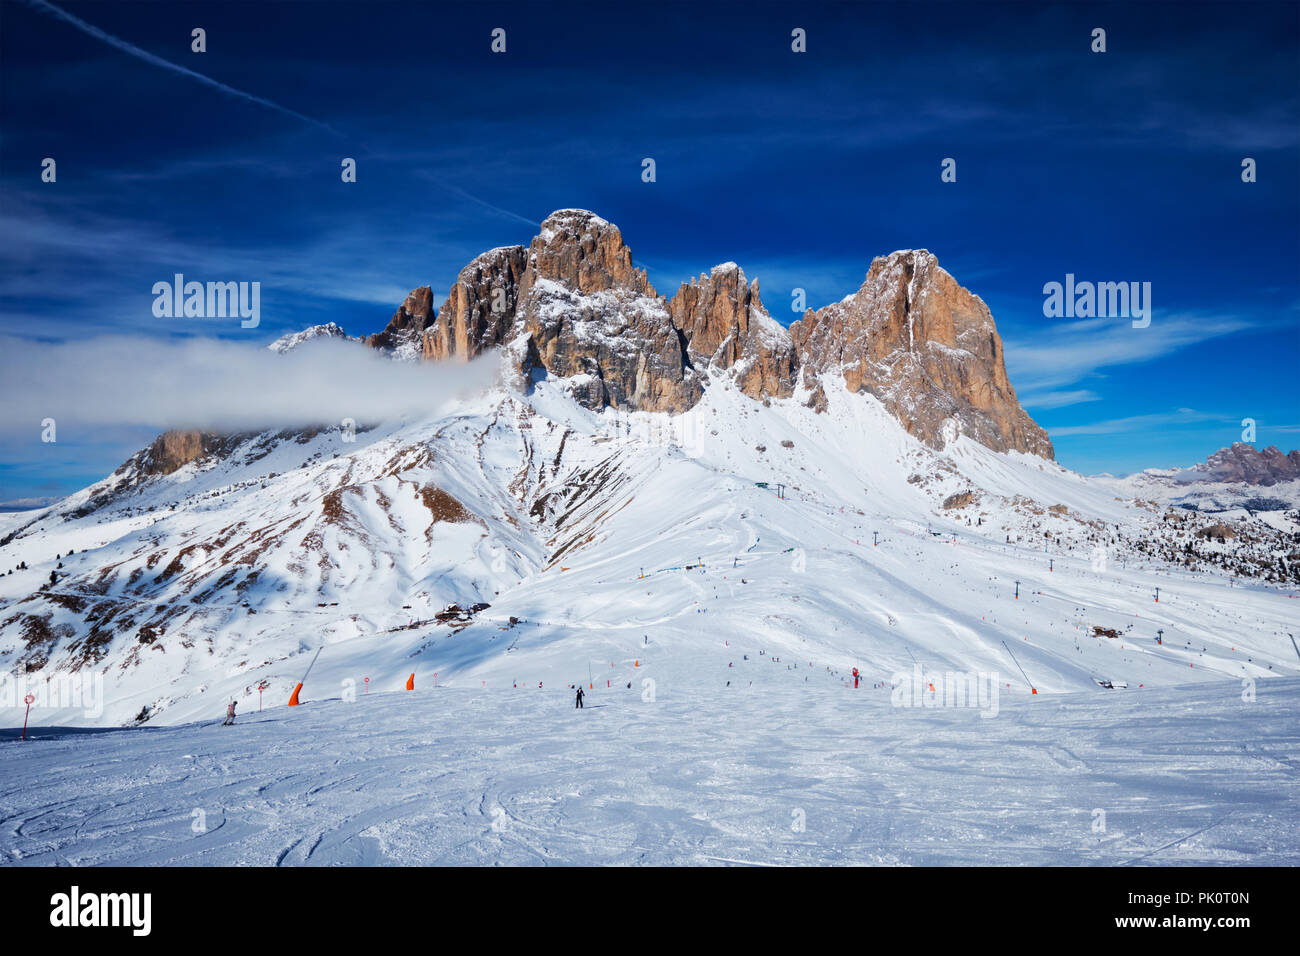 Ski resort in Dolomites, Italy - Stock Image